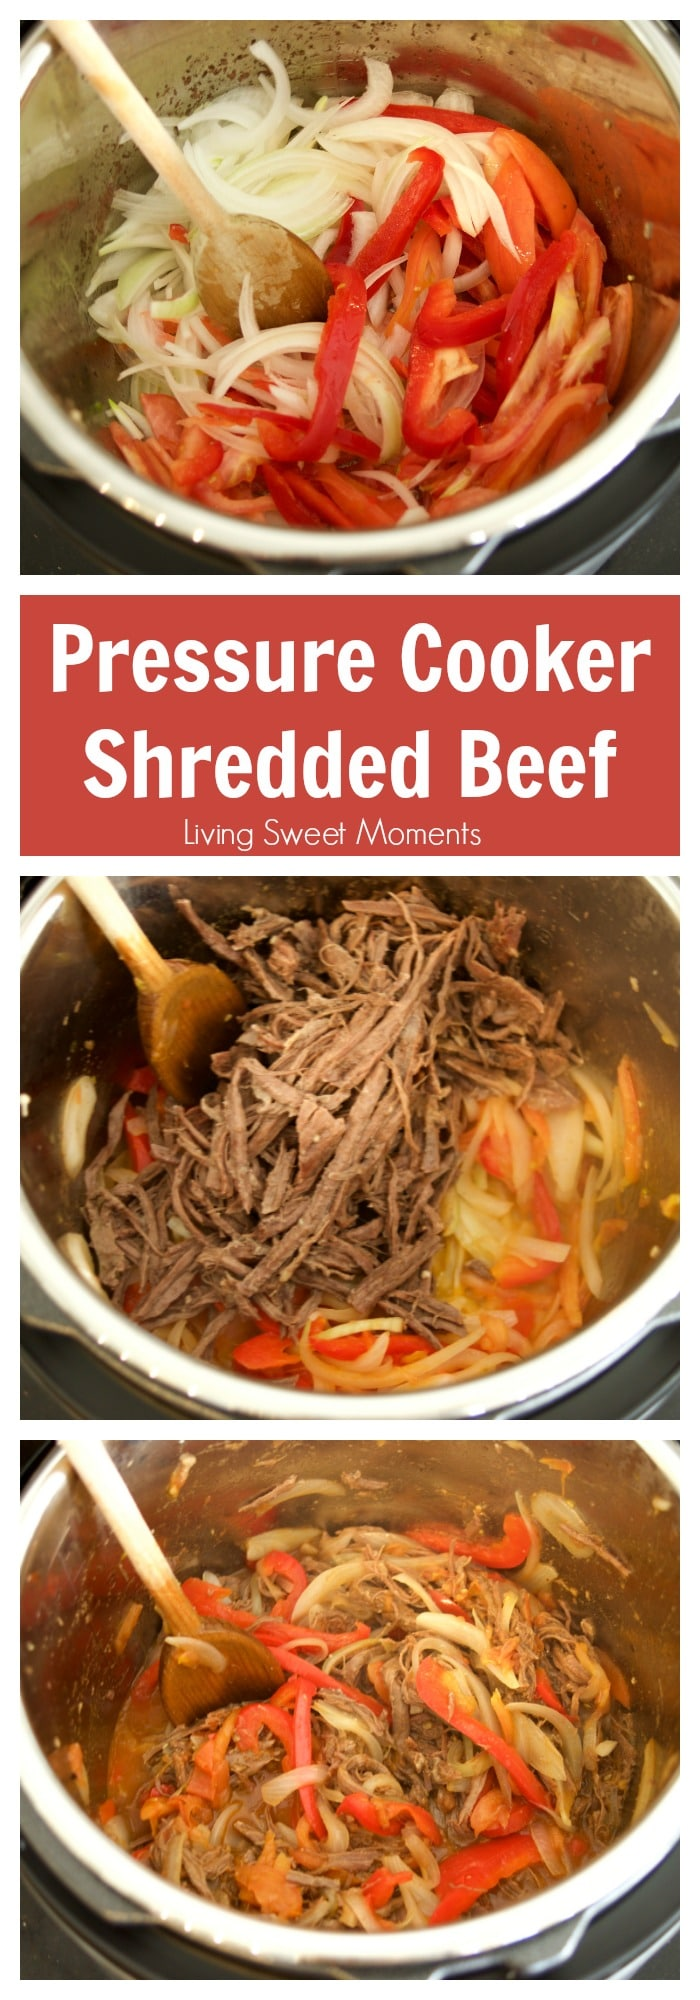 This Venezuelan Shredded Beef (carne mechada) is ready in no time using the Instant Pot pressure cooker. The perfect quick weeknight dinner idea!